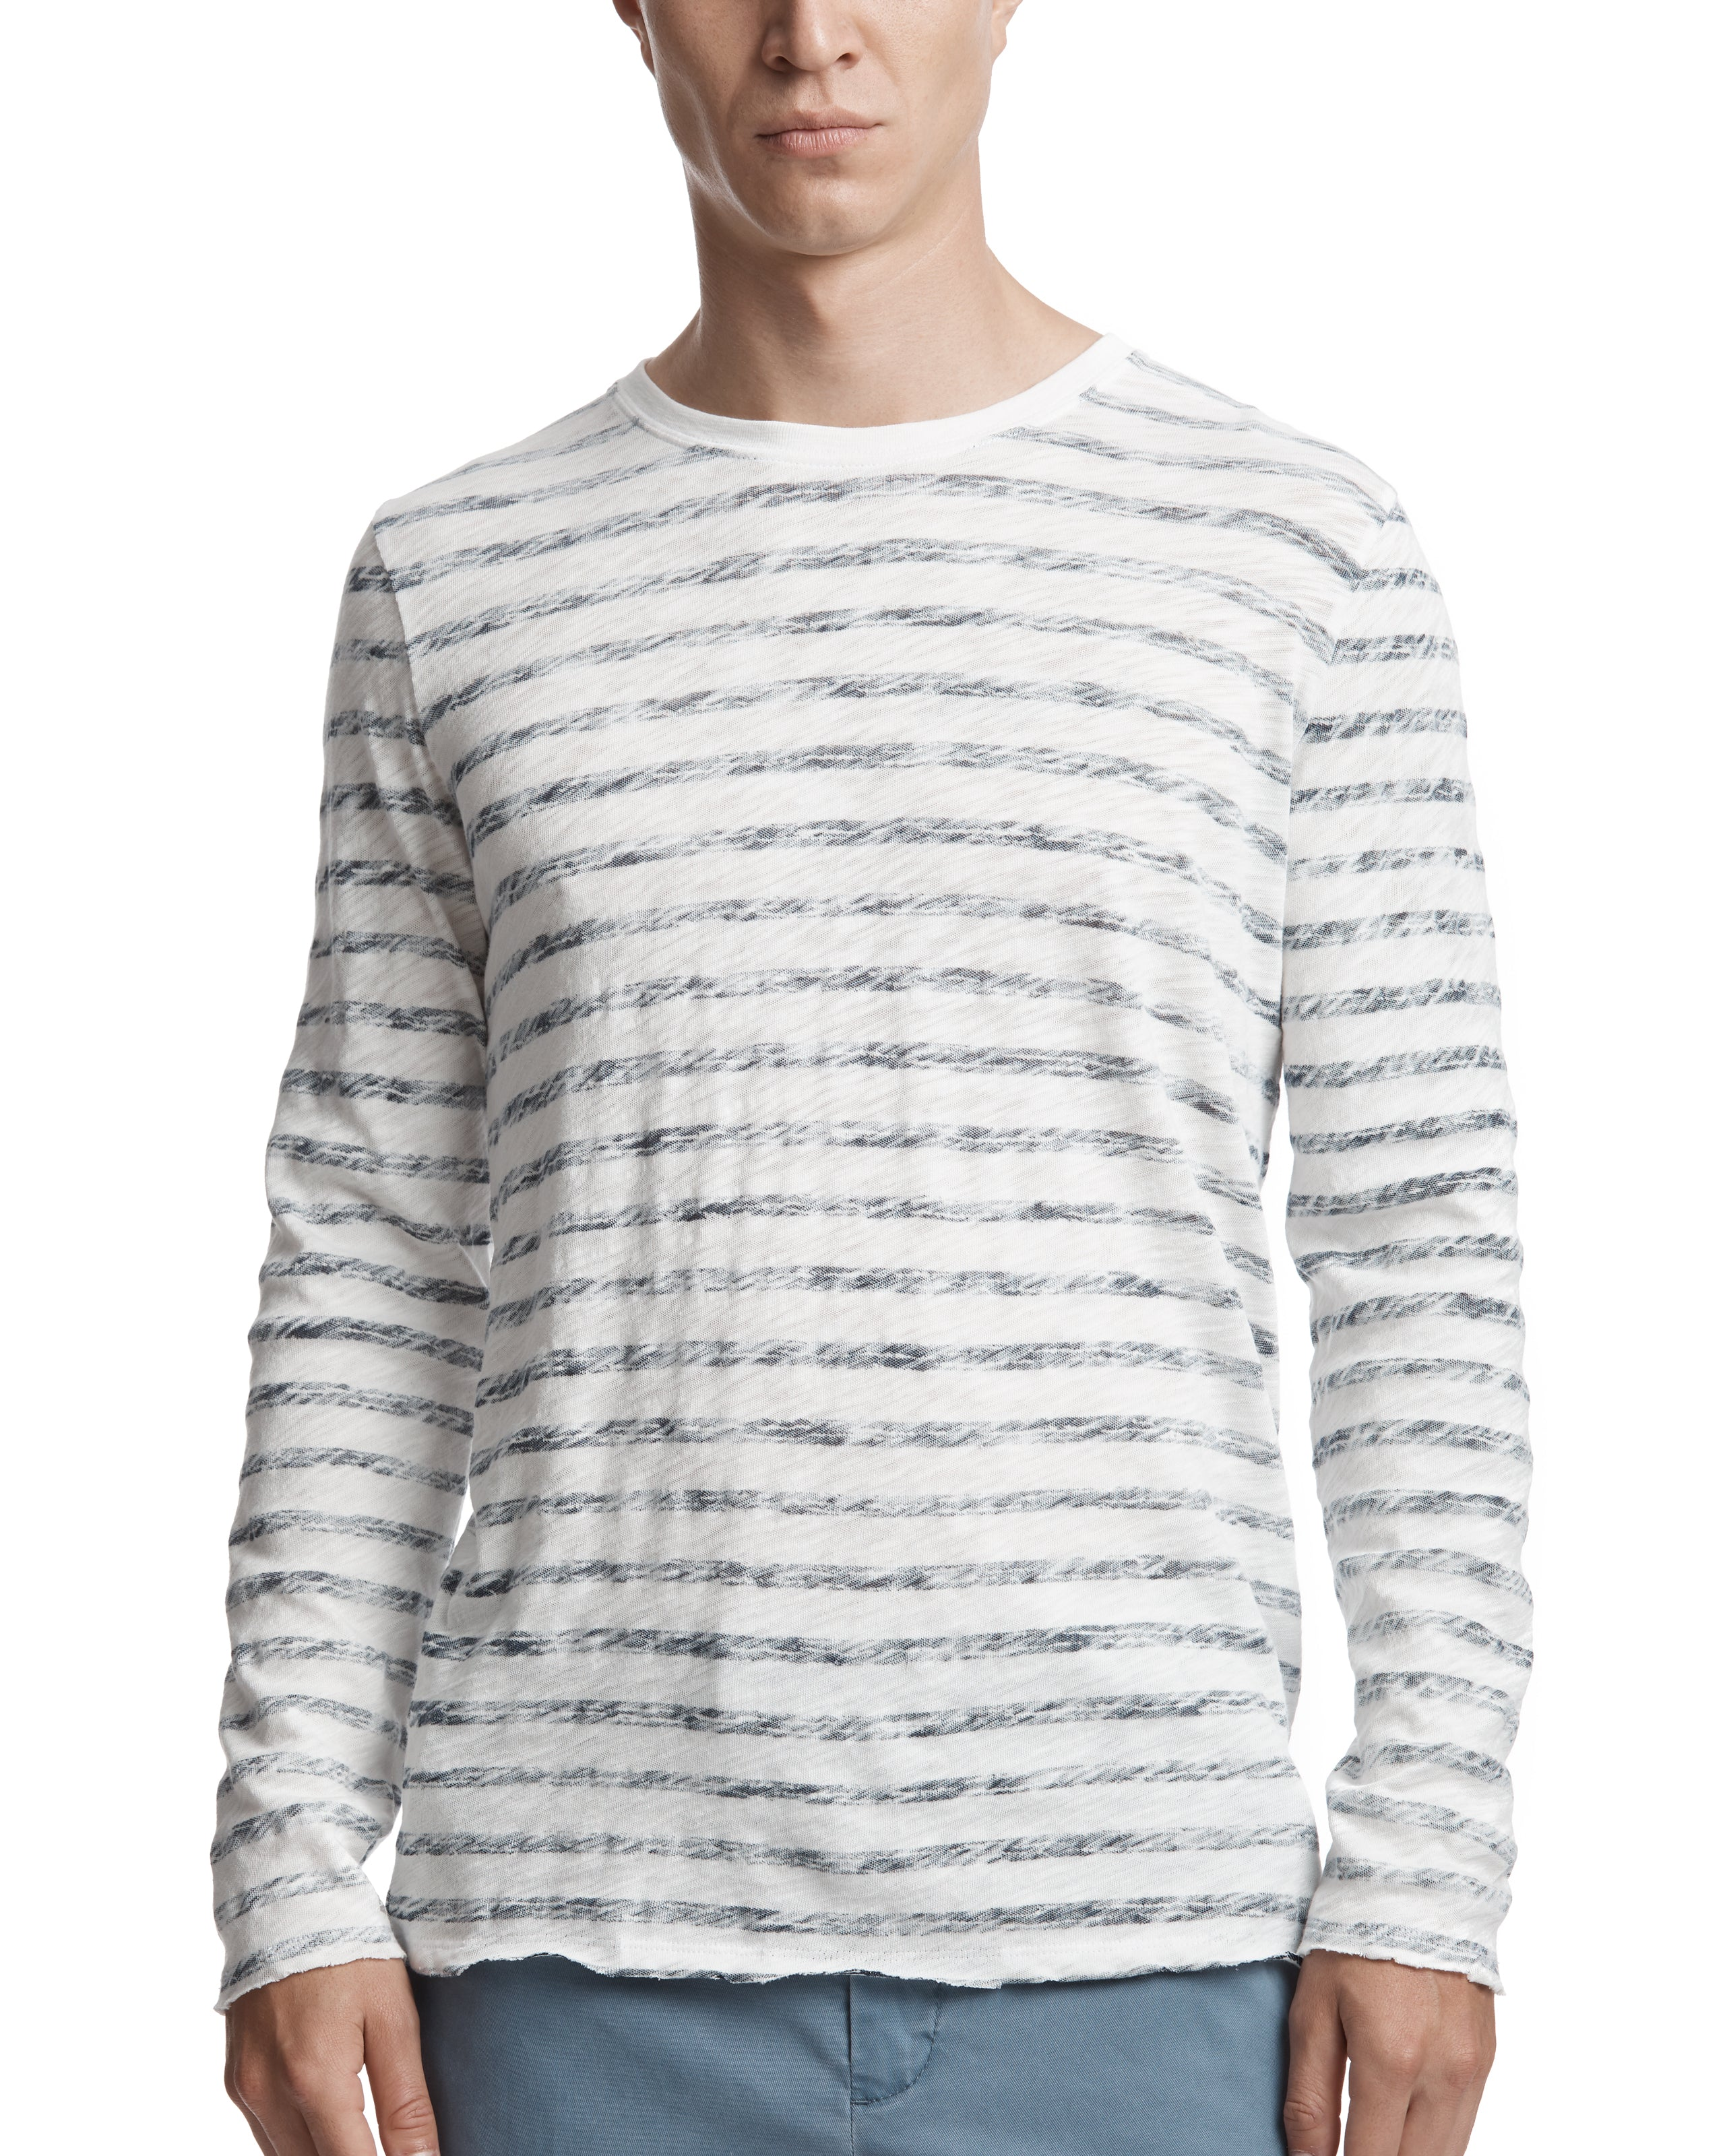 ATM Painted Stripe Slub Jersey Destroyed Wash Long Sleeve Crew